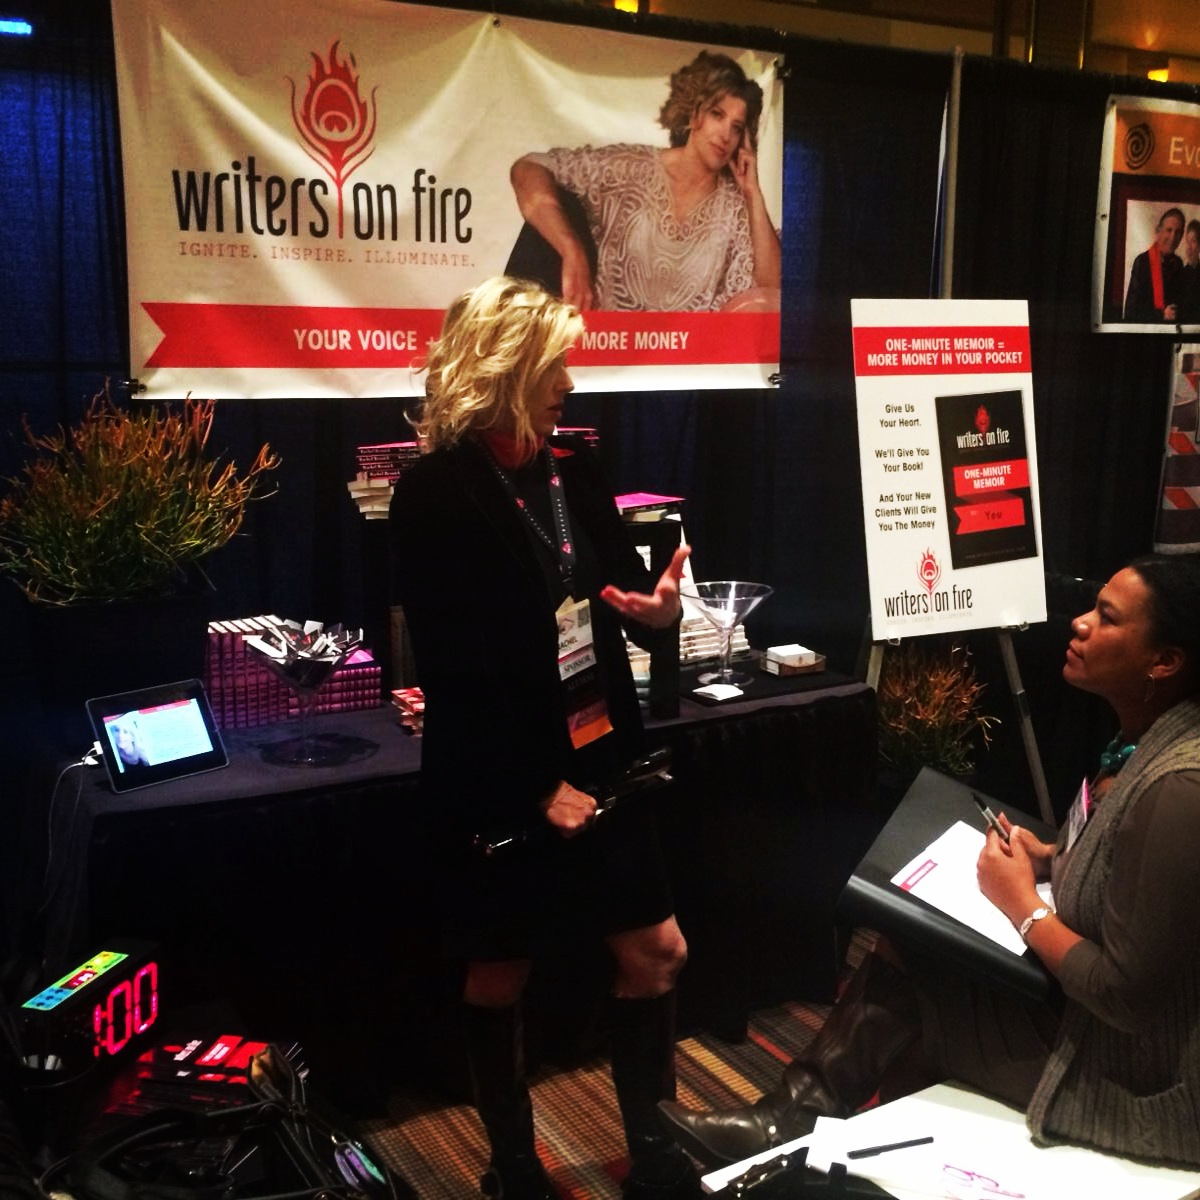 Birth of the One-Minute Memoir! Our first writer, Kimeiko Vision, at the Writers On Fire booth. Be The Change, 2014. Las Vegas, NV.